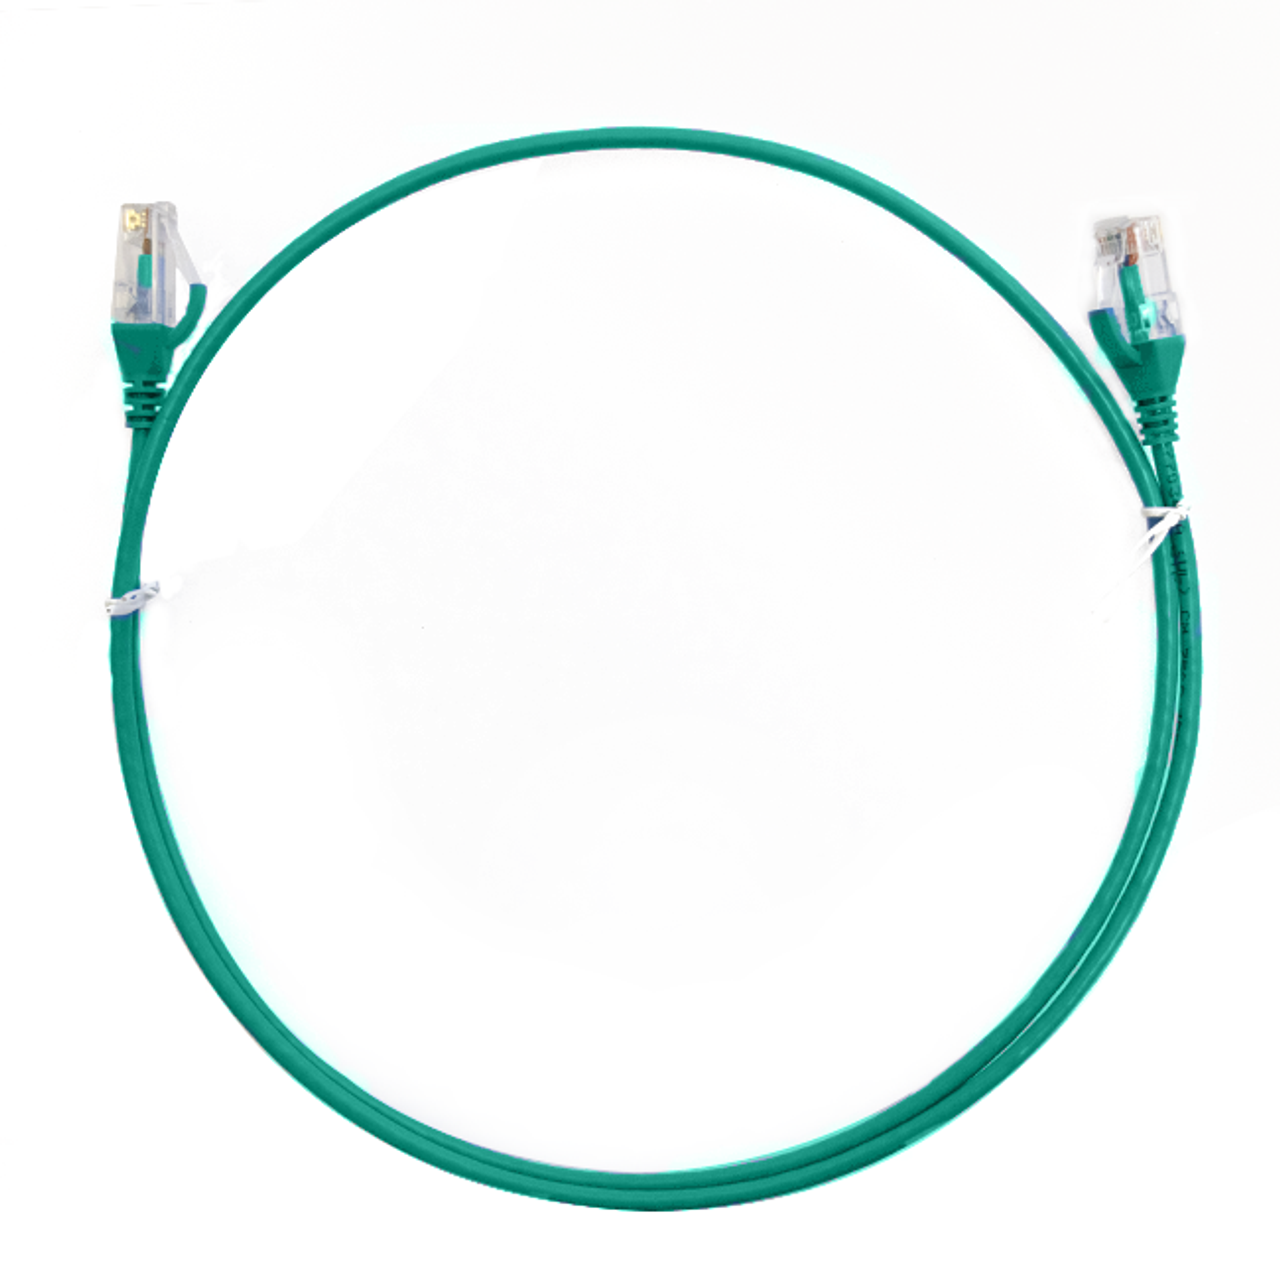 Image for 1.5m Cat 6 Ultra Thin LSZH Ethernet Network Cables: Green CX Computer Superstore